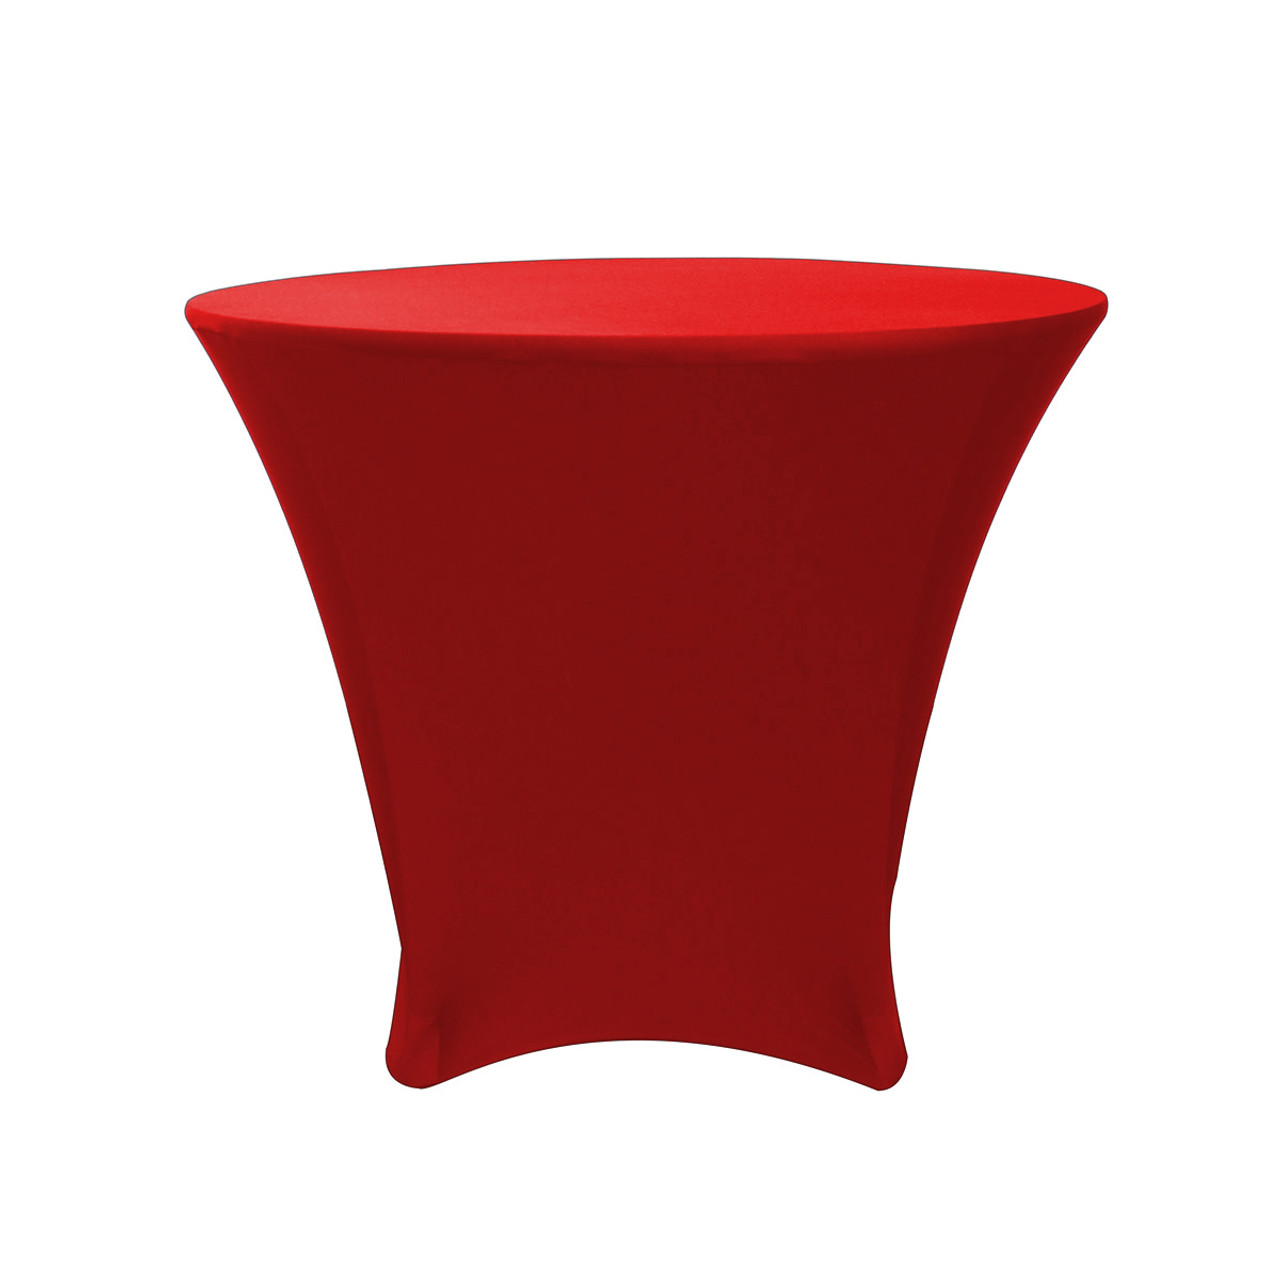 Bon 36 X 30 Inch Lowboy Cocktail Round Stretch Spandex Table Cover Red   Your  Chair Covers Inc.